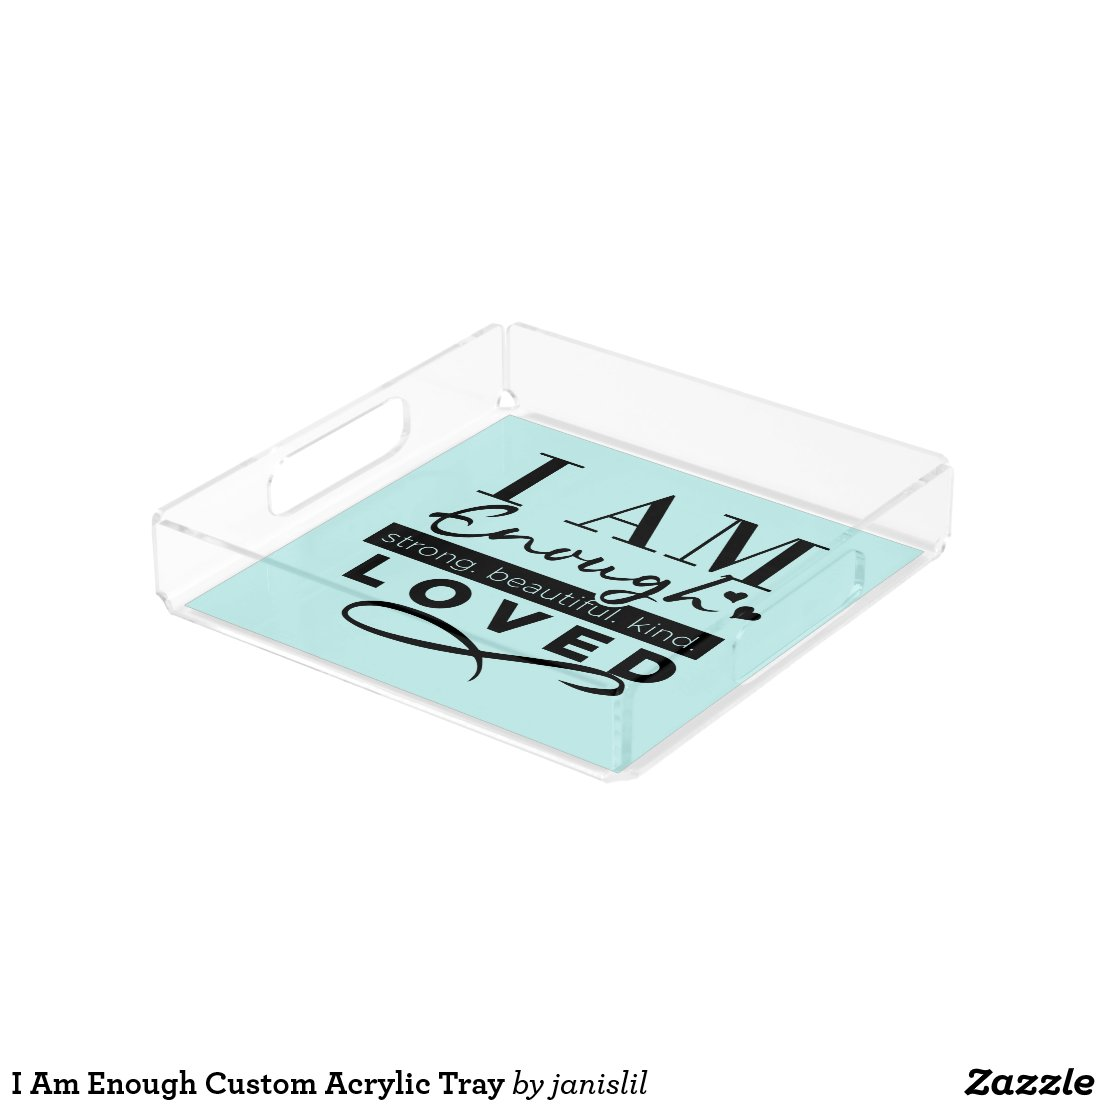 I Am Enough Custom Acrylic Tray